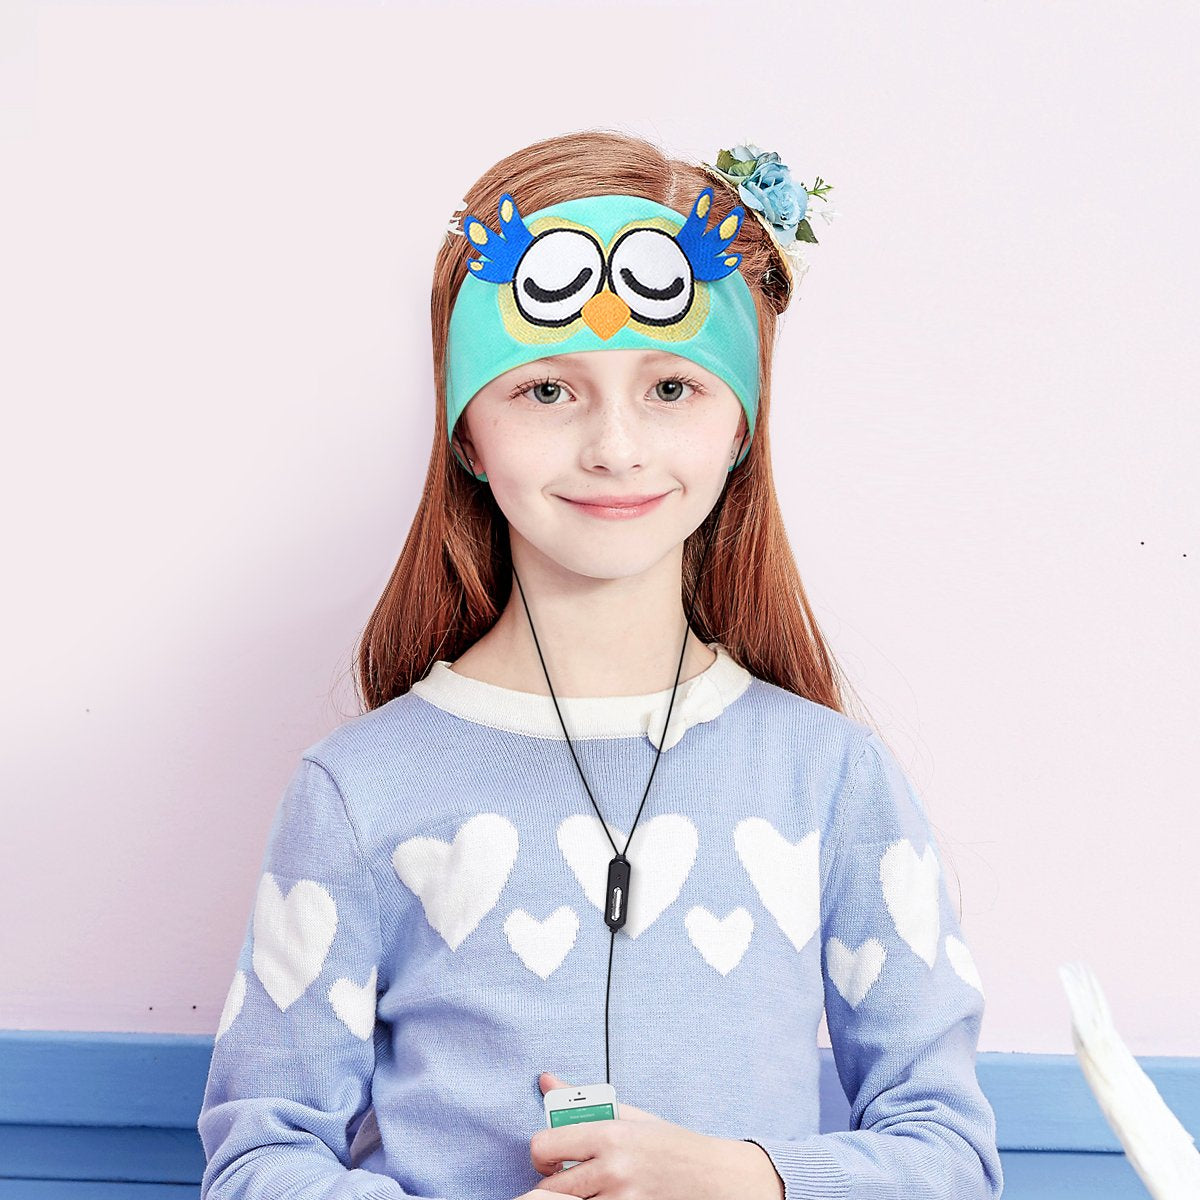 Wired Kids Easy Adjustable Soft Fleece Headband Headphones